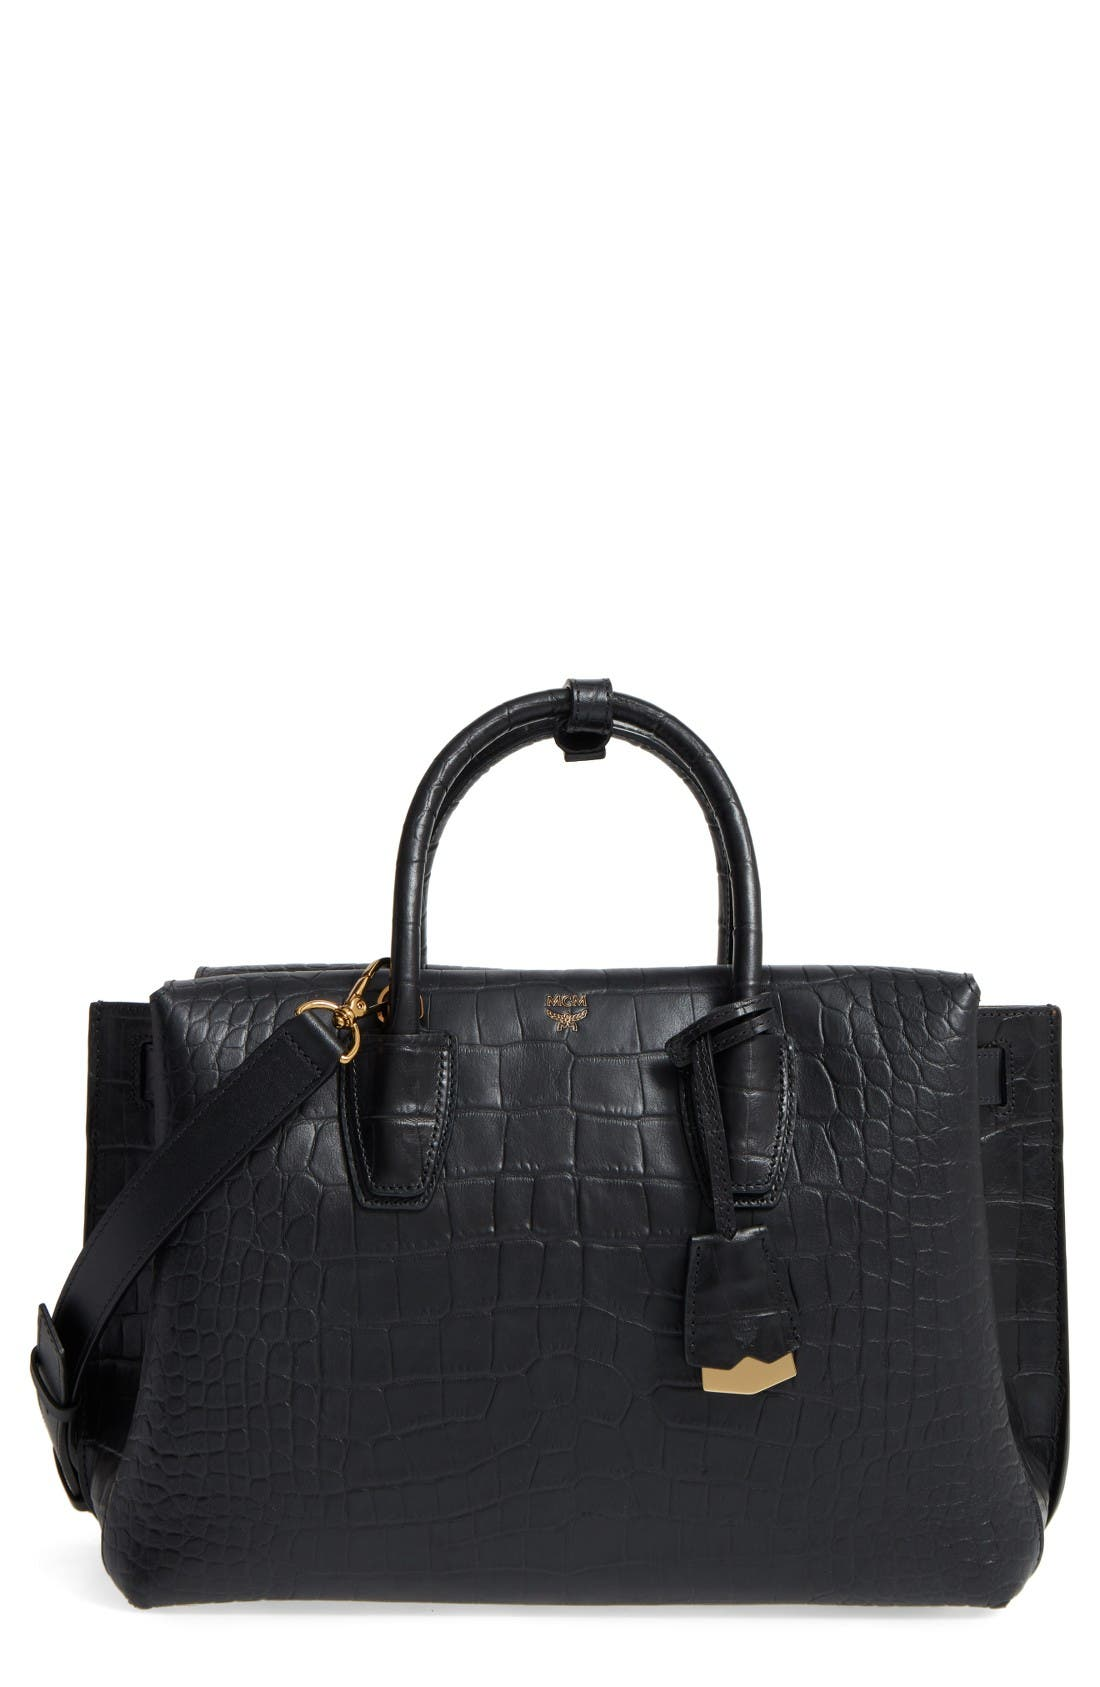 Alternate Image 1 Selected - MCM Medium Milla Croc Embossed Leather Tote